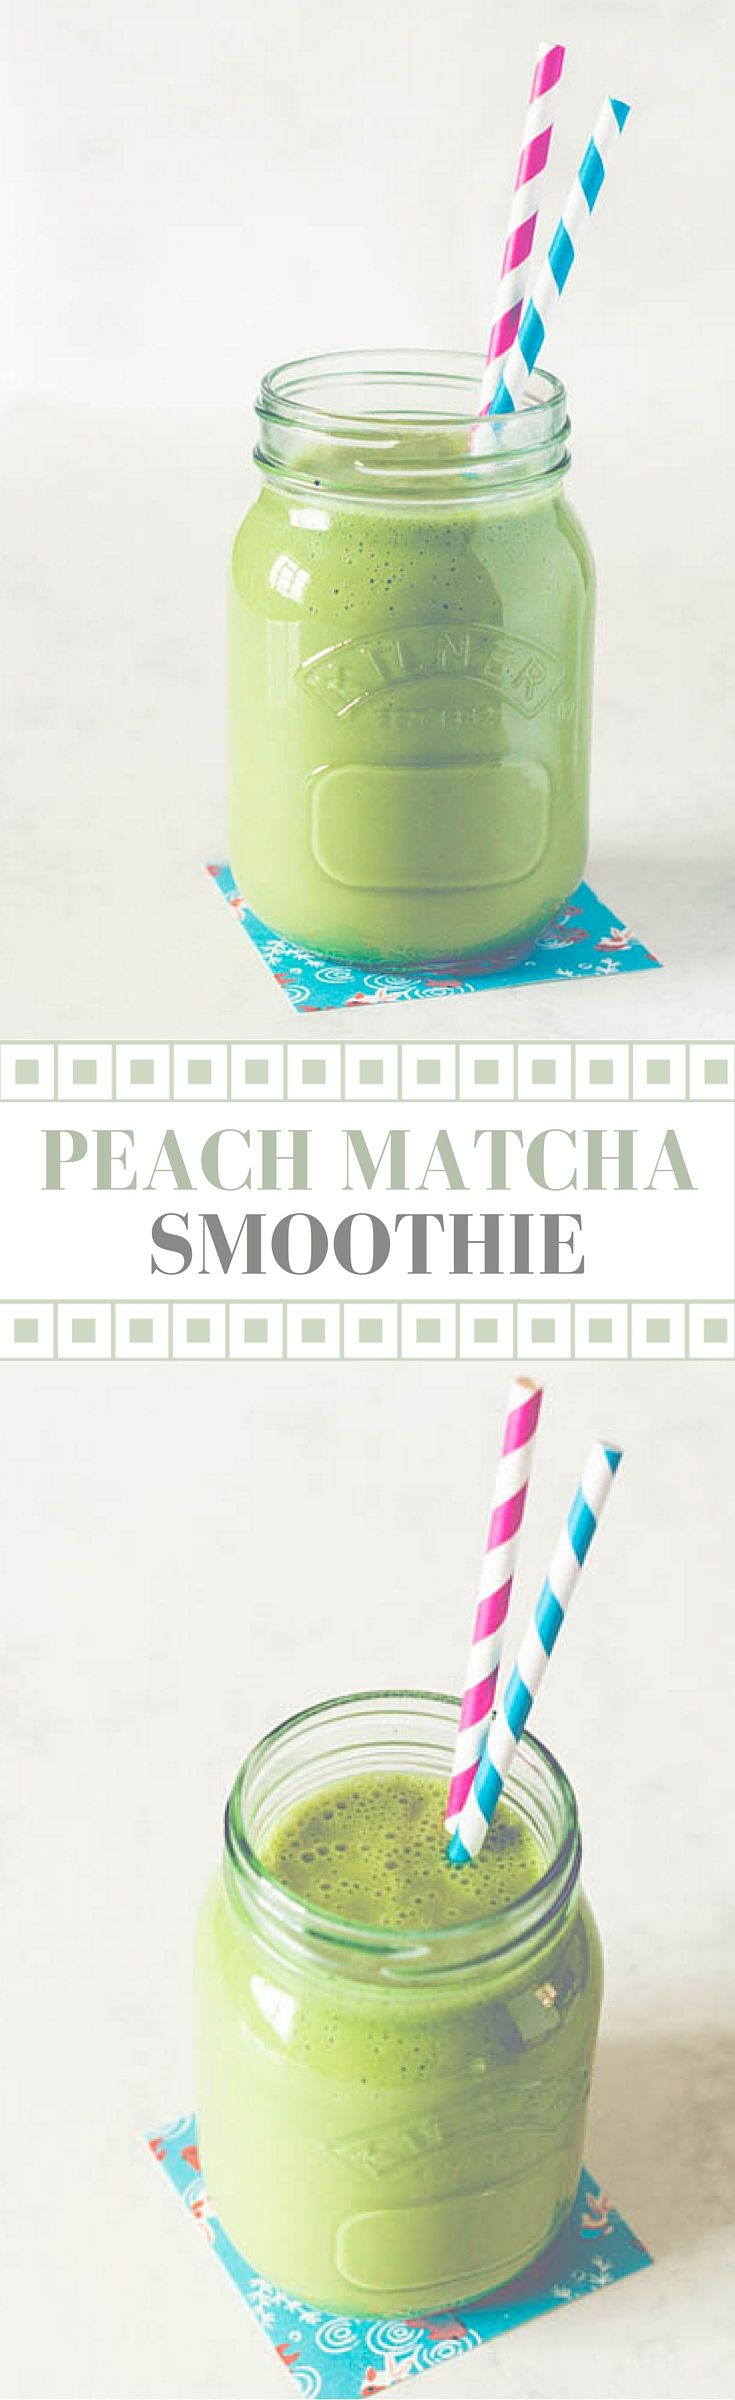 Peach Matcha Smoothie | Recipes From A Pantry